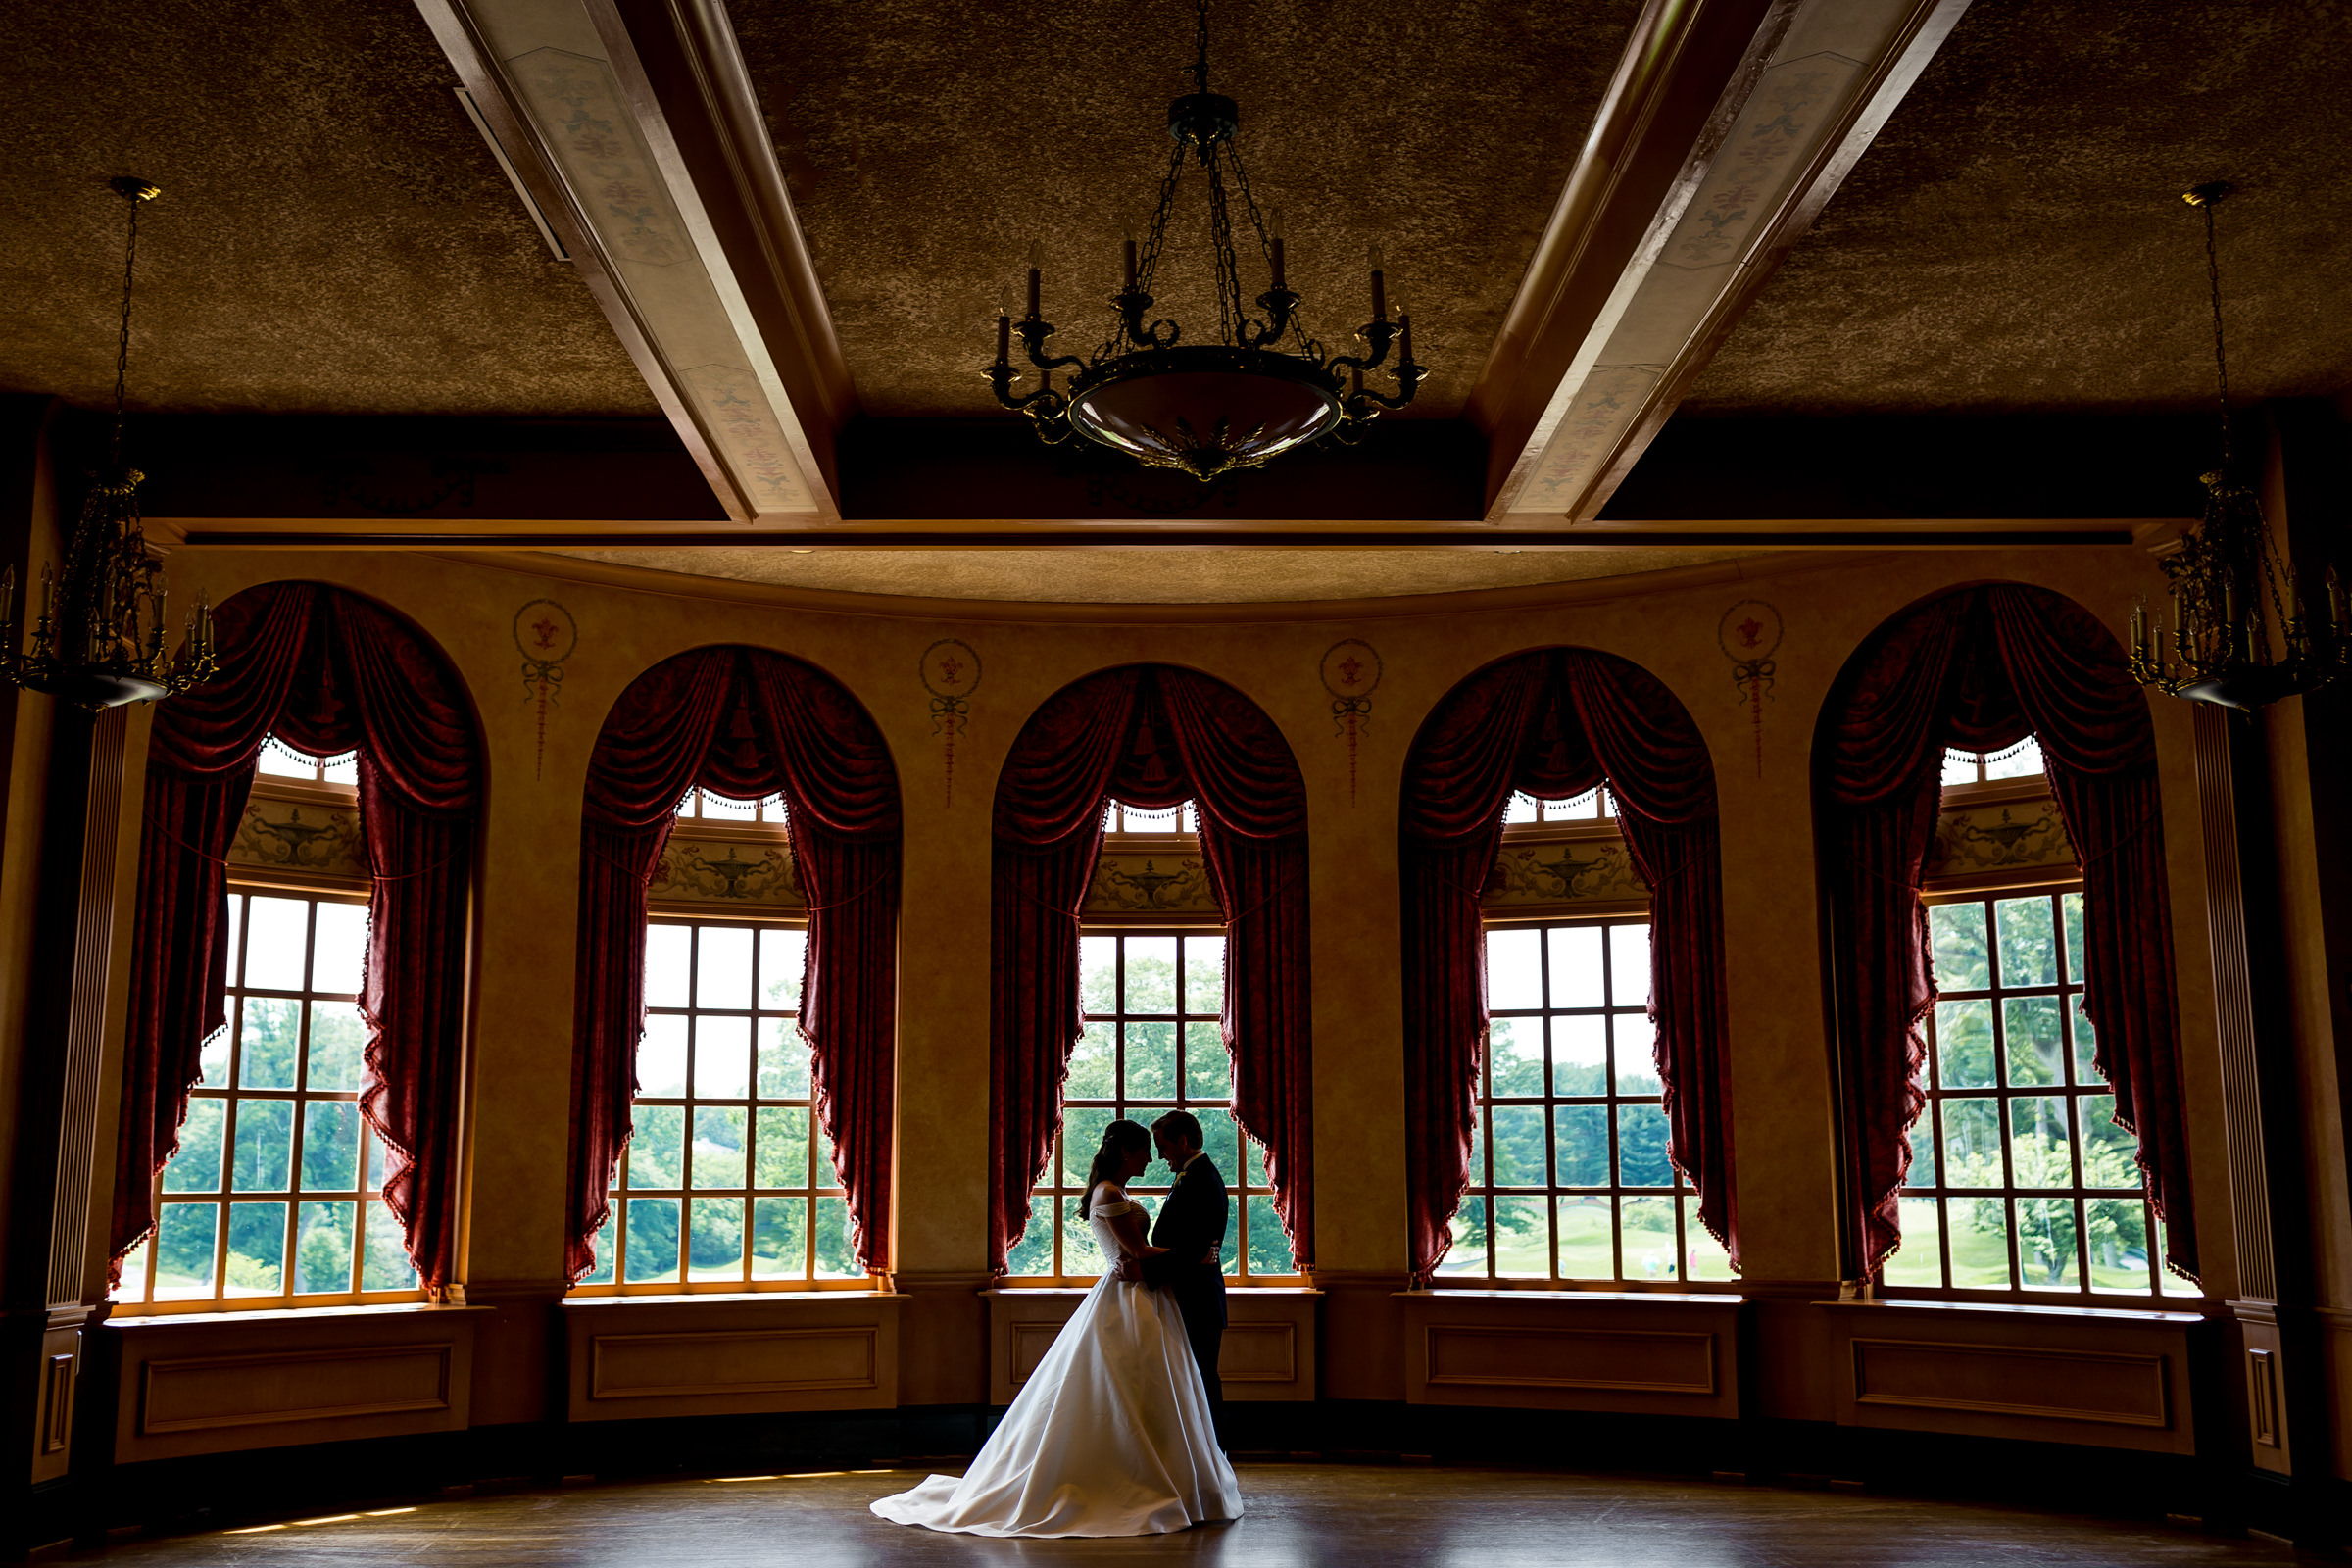 Partial silhouette couple in historic interior setting - photo by Procopio Photography